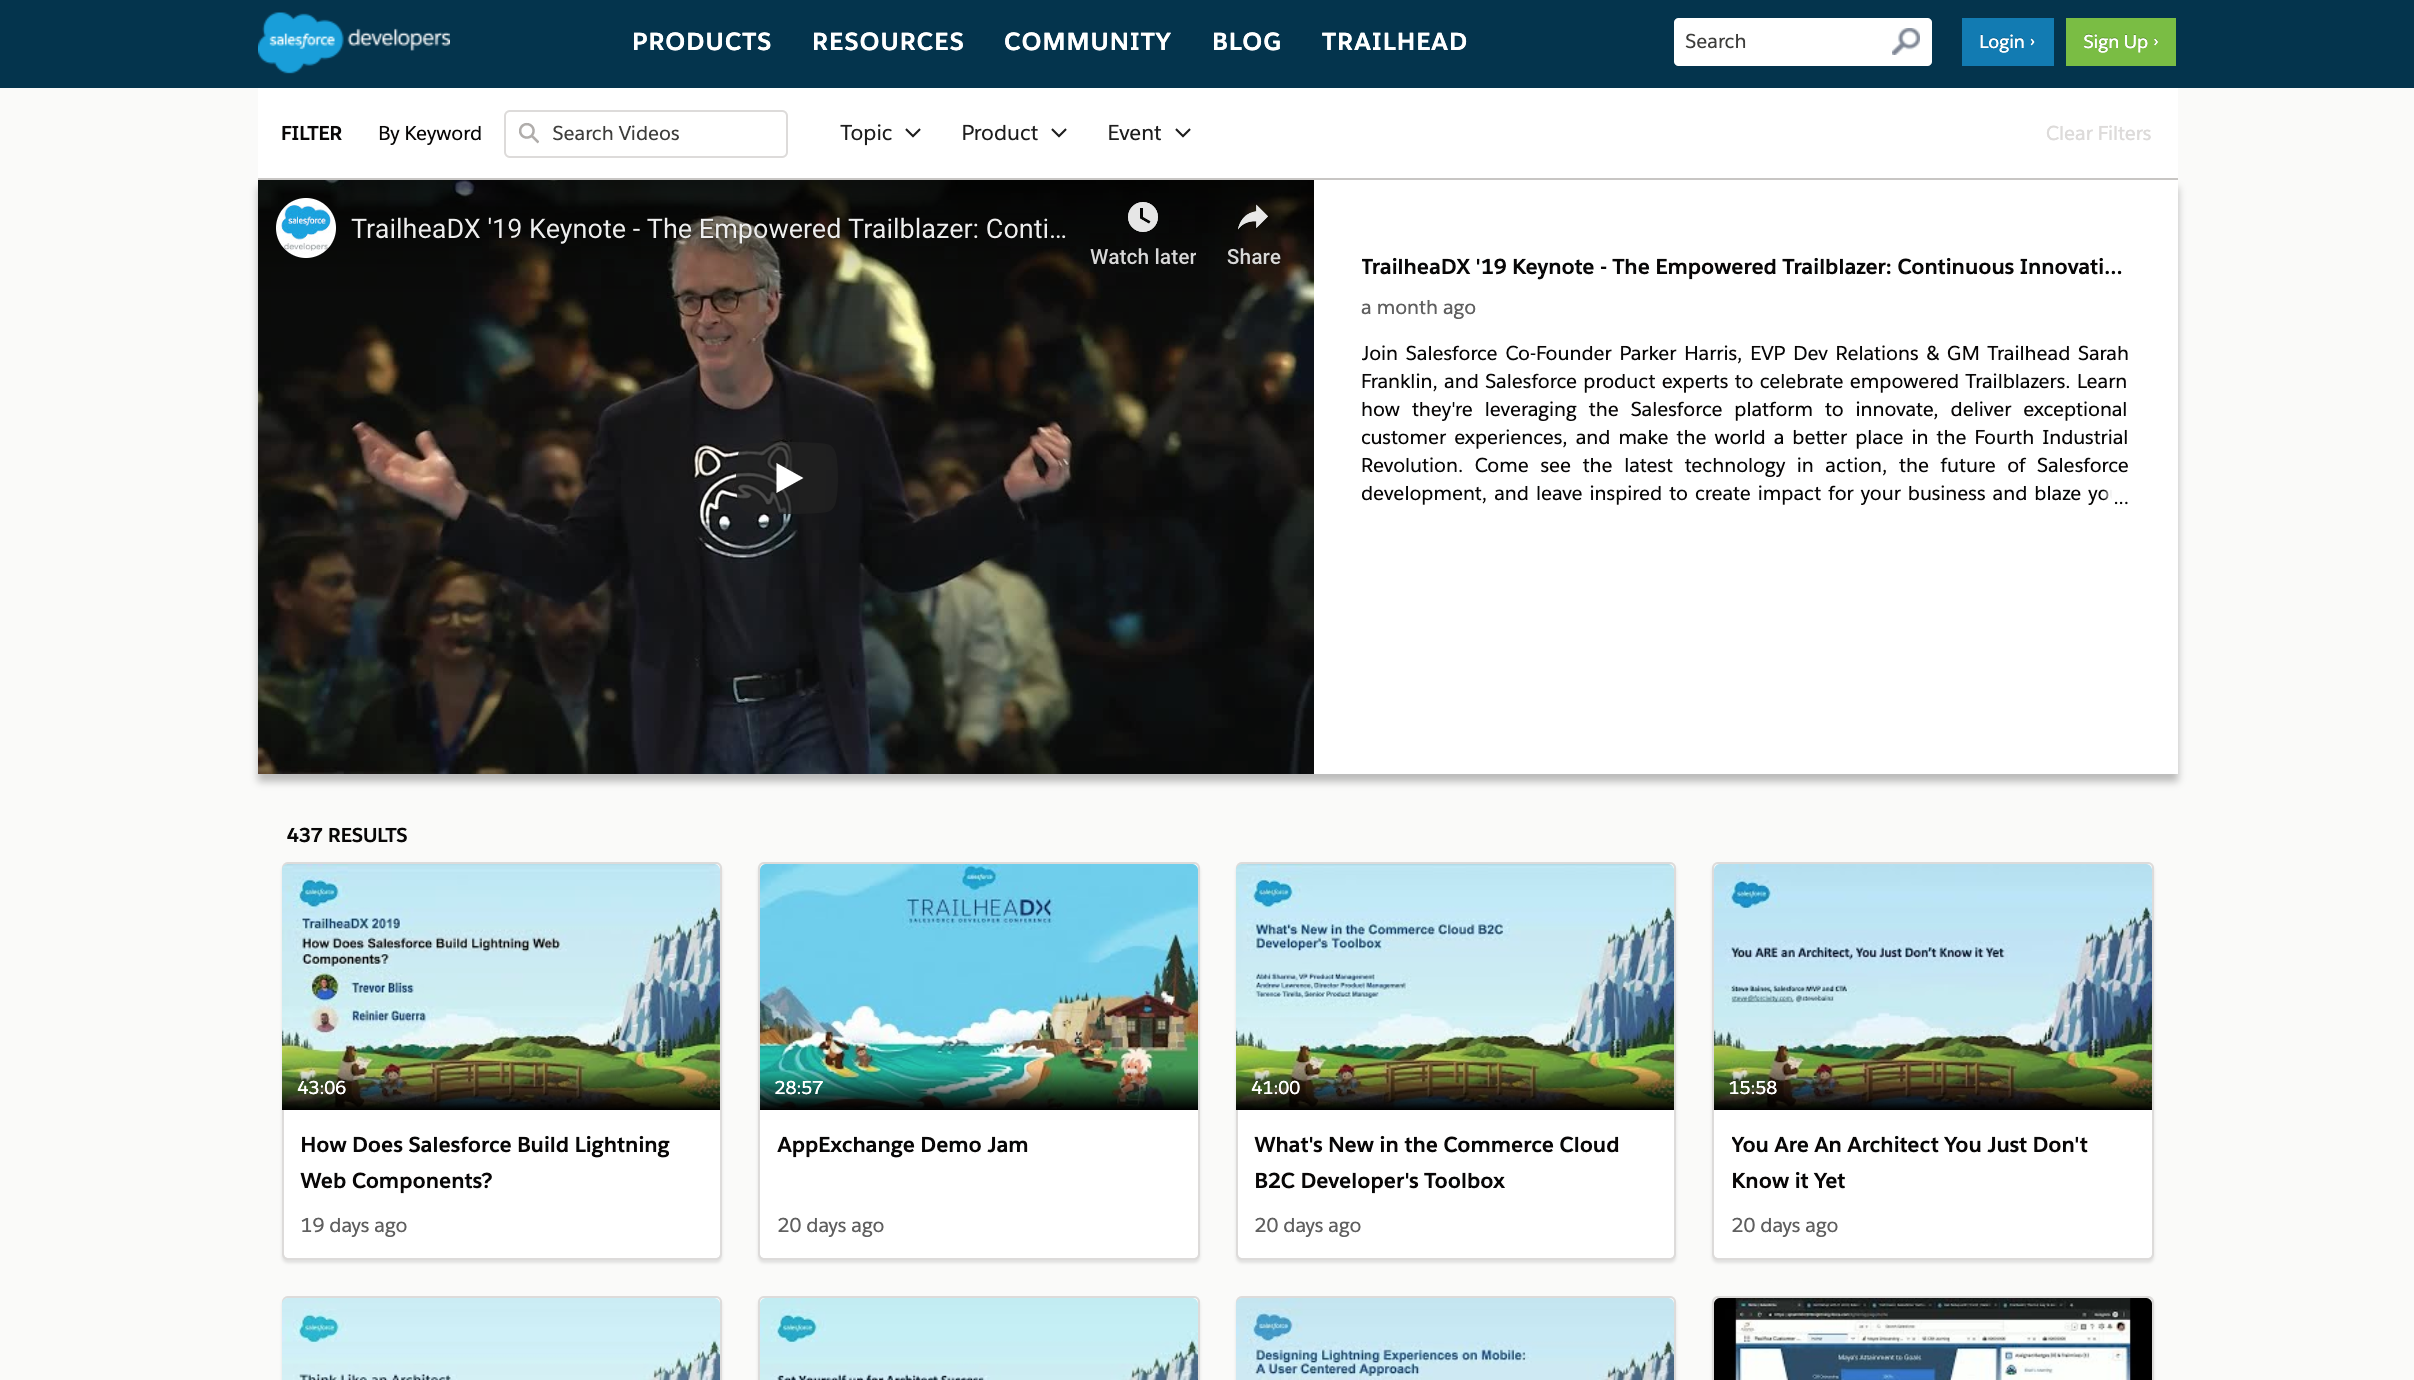 Screenshot of Salesforce Video Gallery